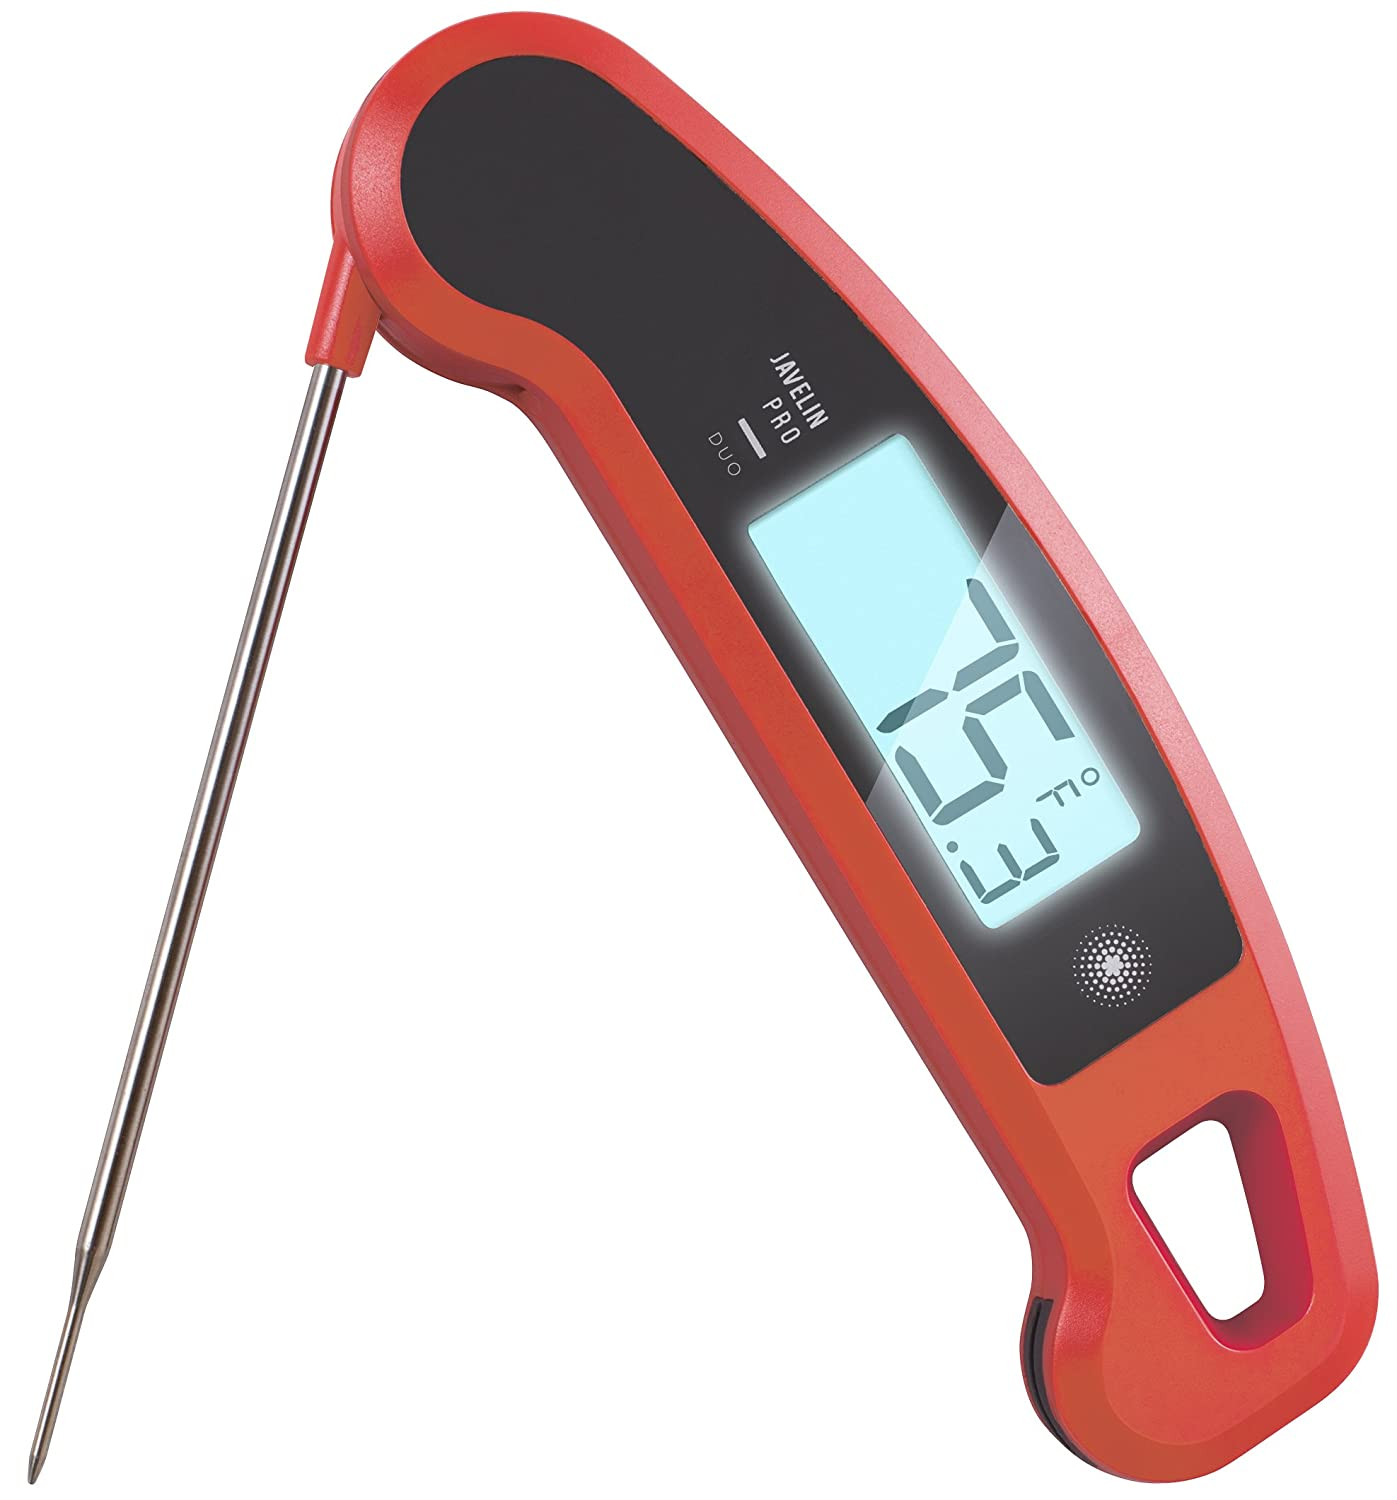 6. Lavatools Javelin PRO Duo Ambidextrous Backlit Instant Read Digital Meat Thermometer